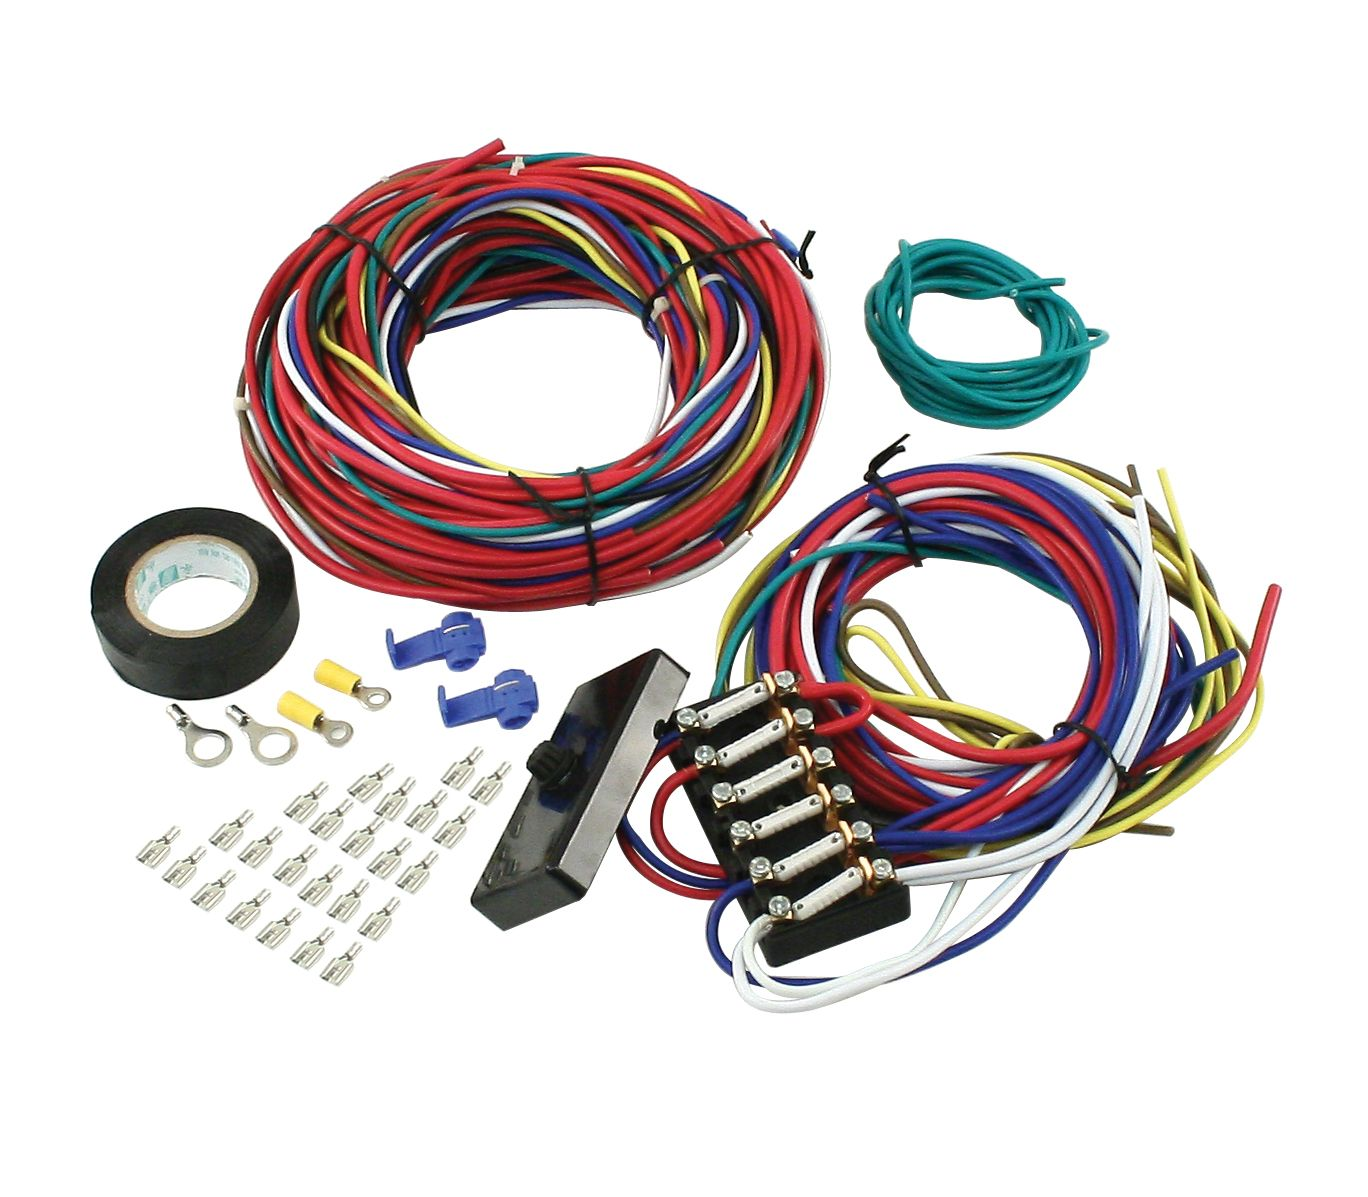 Universal Automotive Wiring Harness Universal Wiring Harness Hot